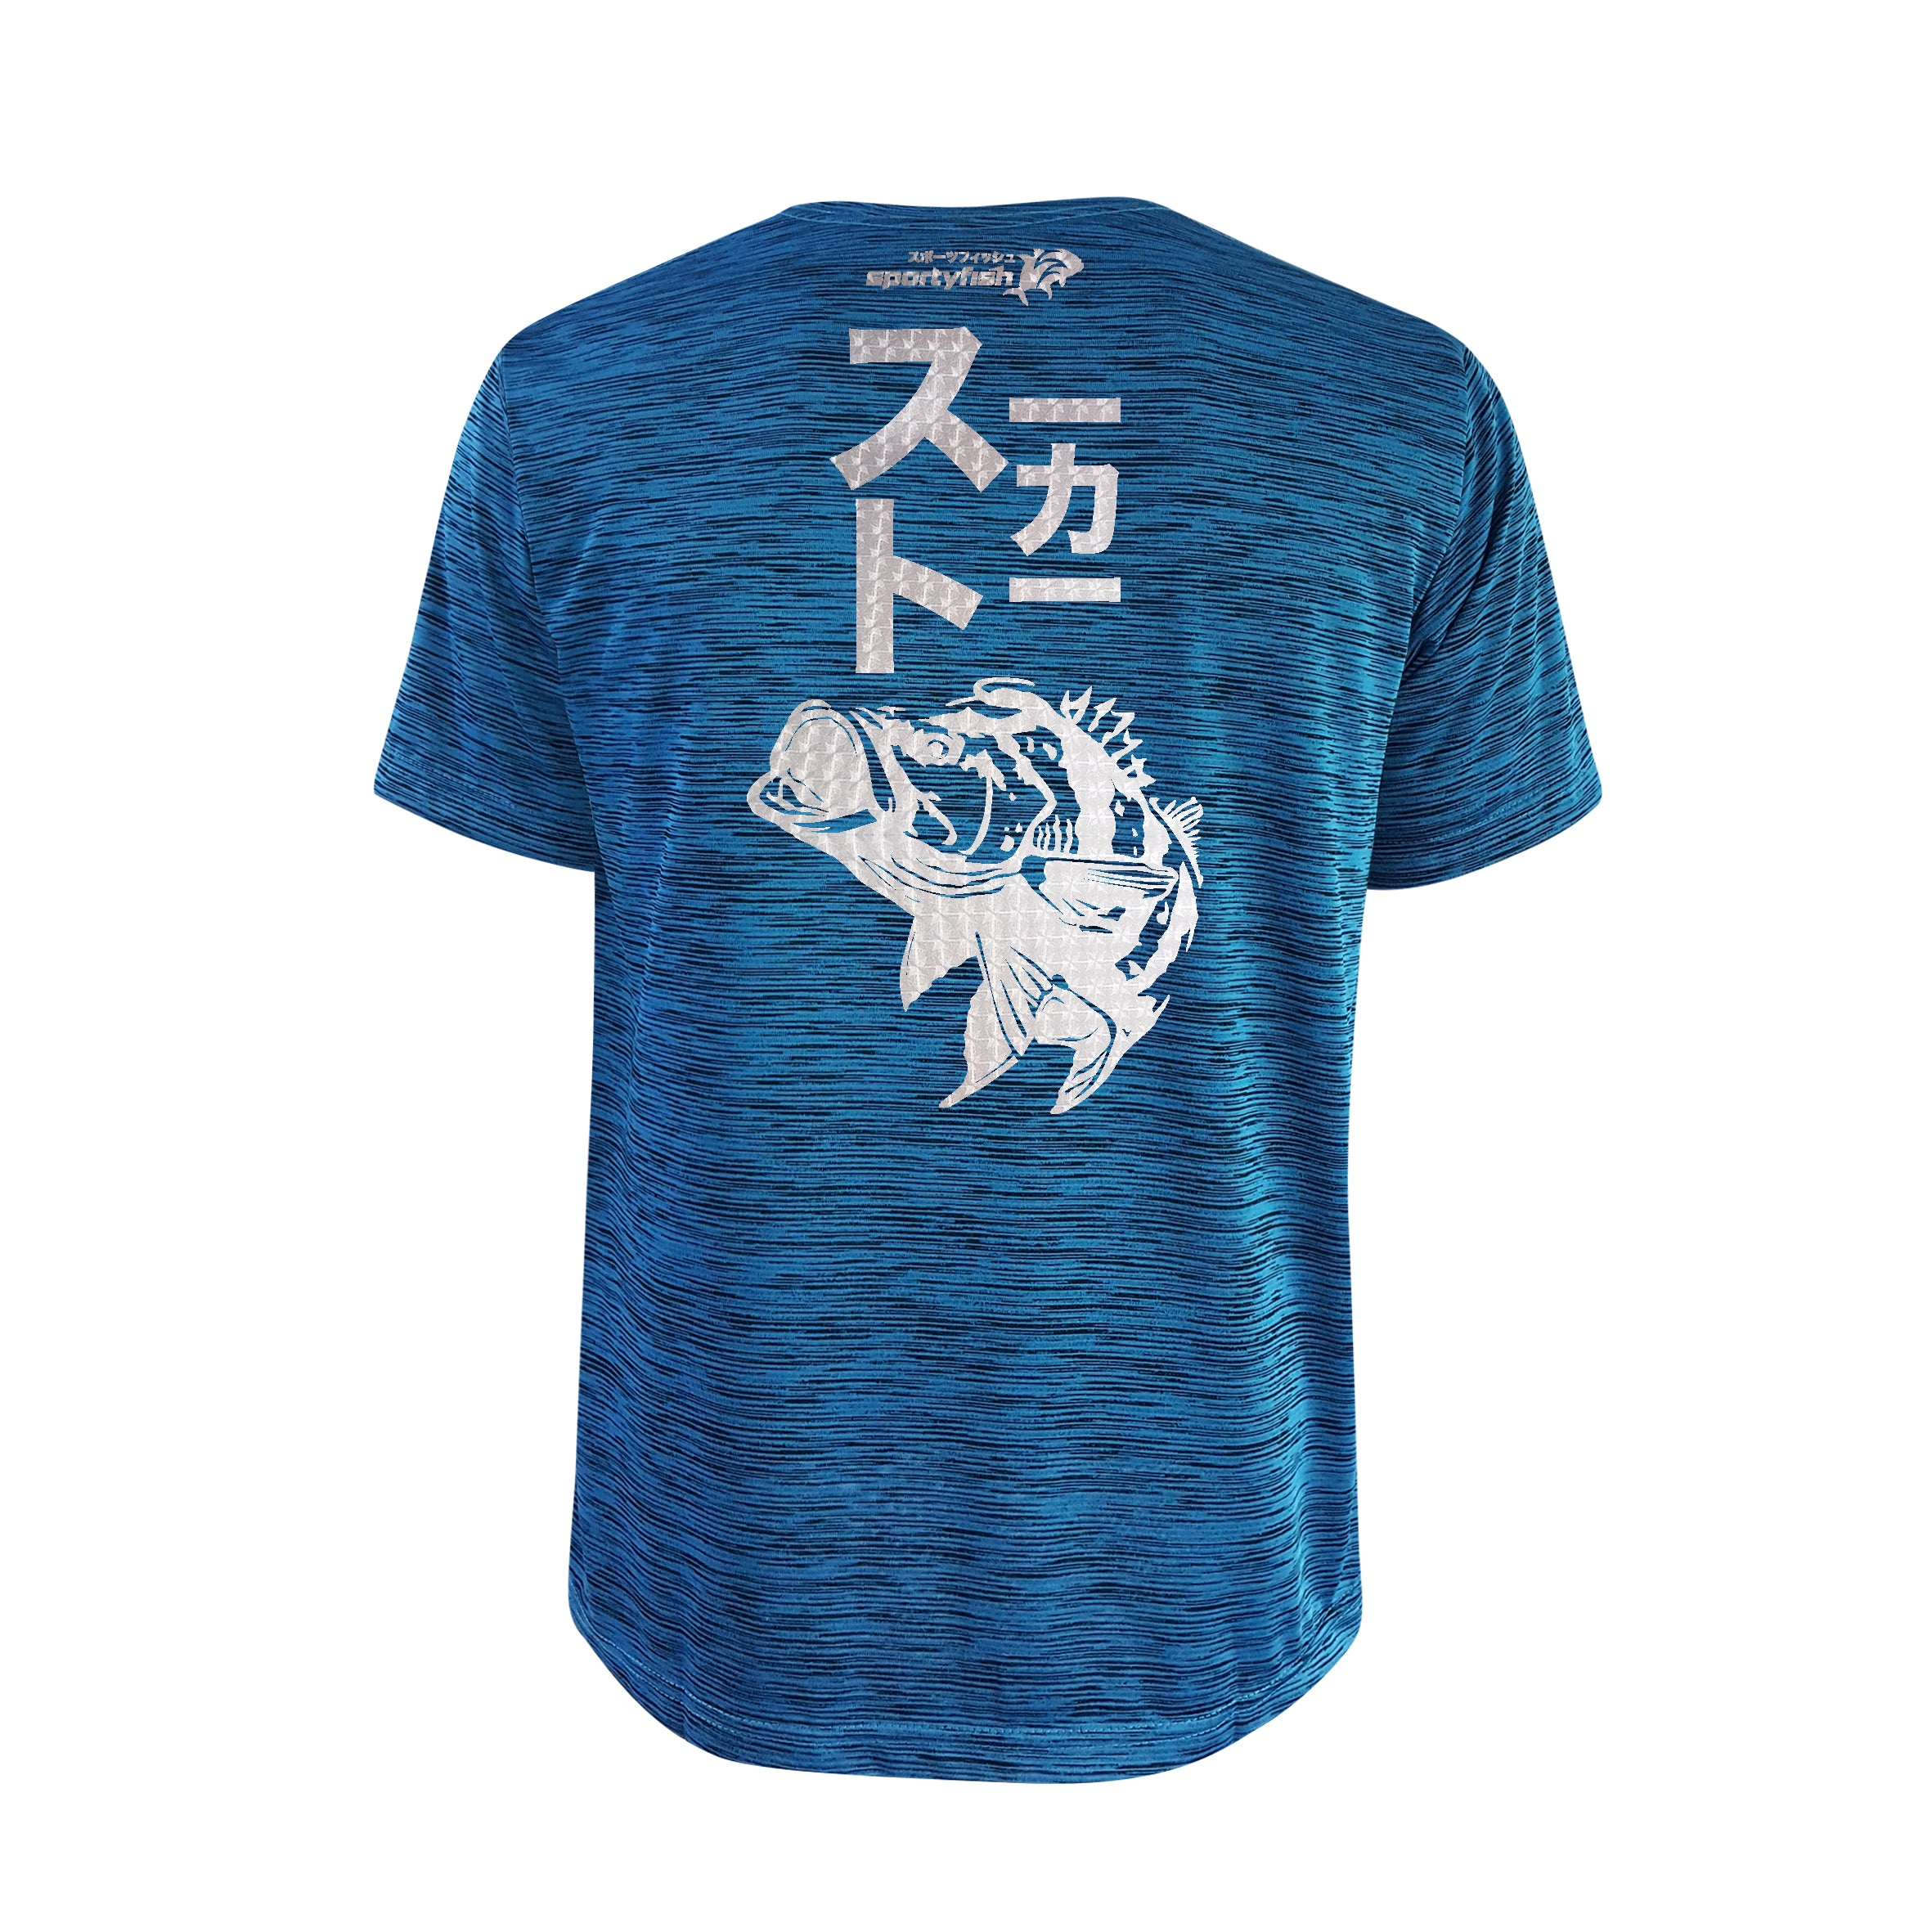 Bold Series Turquoise T-shirt(SS): The Peacock Bass(Stealth Stalker)(In Japanese Words)